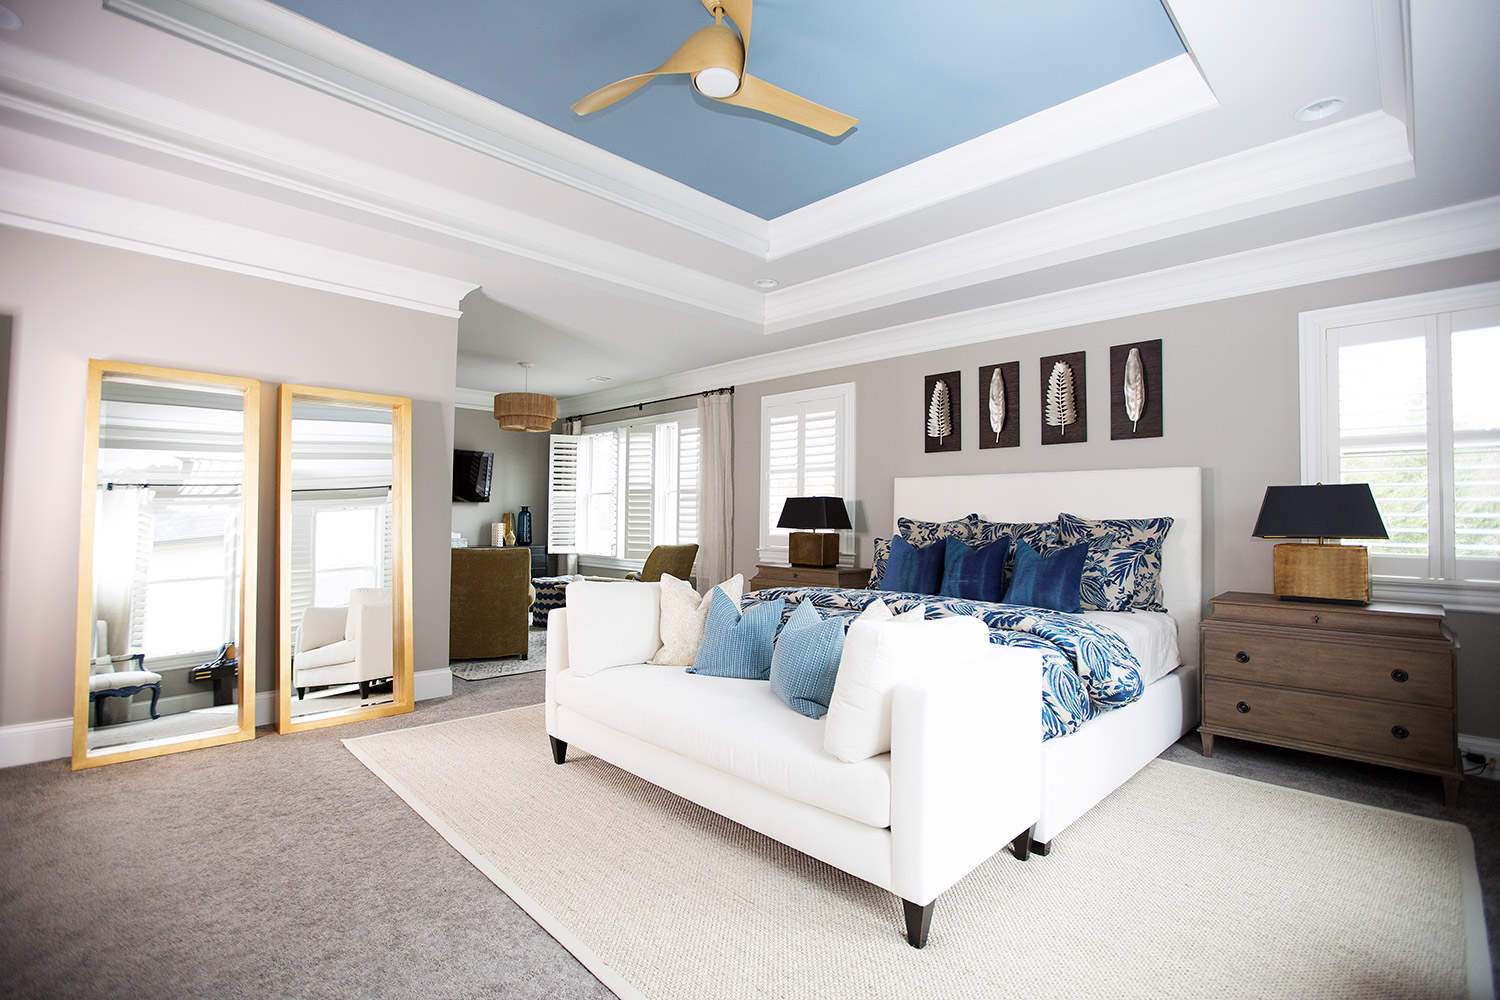 Transitional master bedroom with white upholstered bed frame, leaning mirrors, and chaise at foot of bed